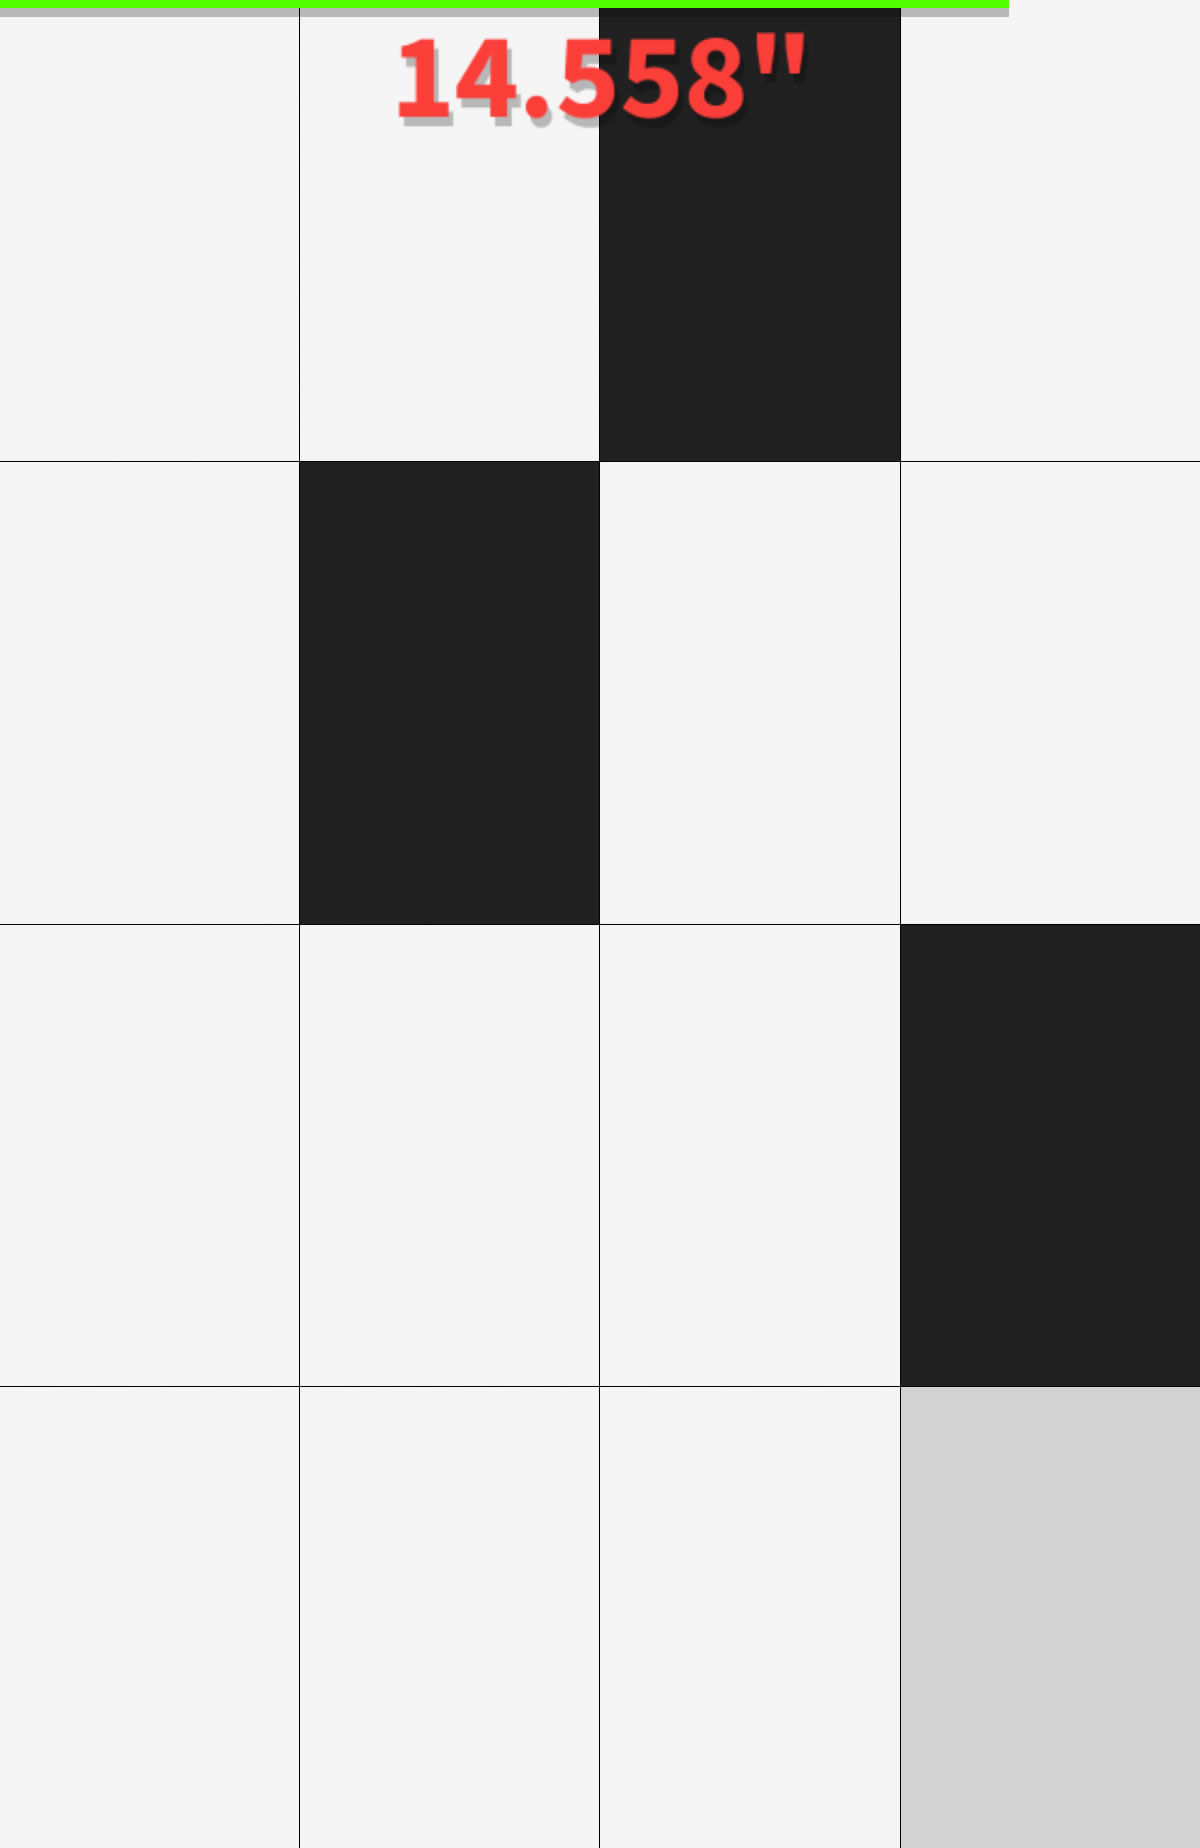 White Tile Game